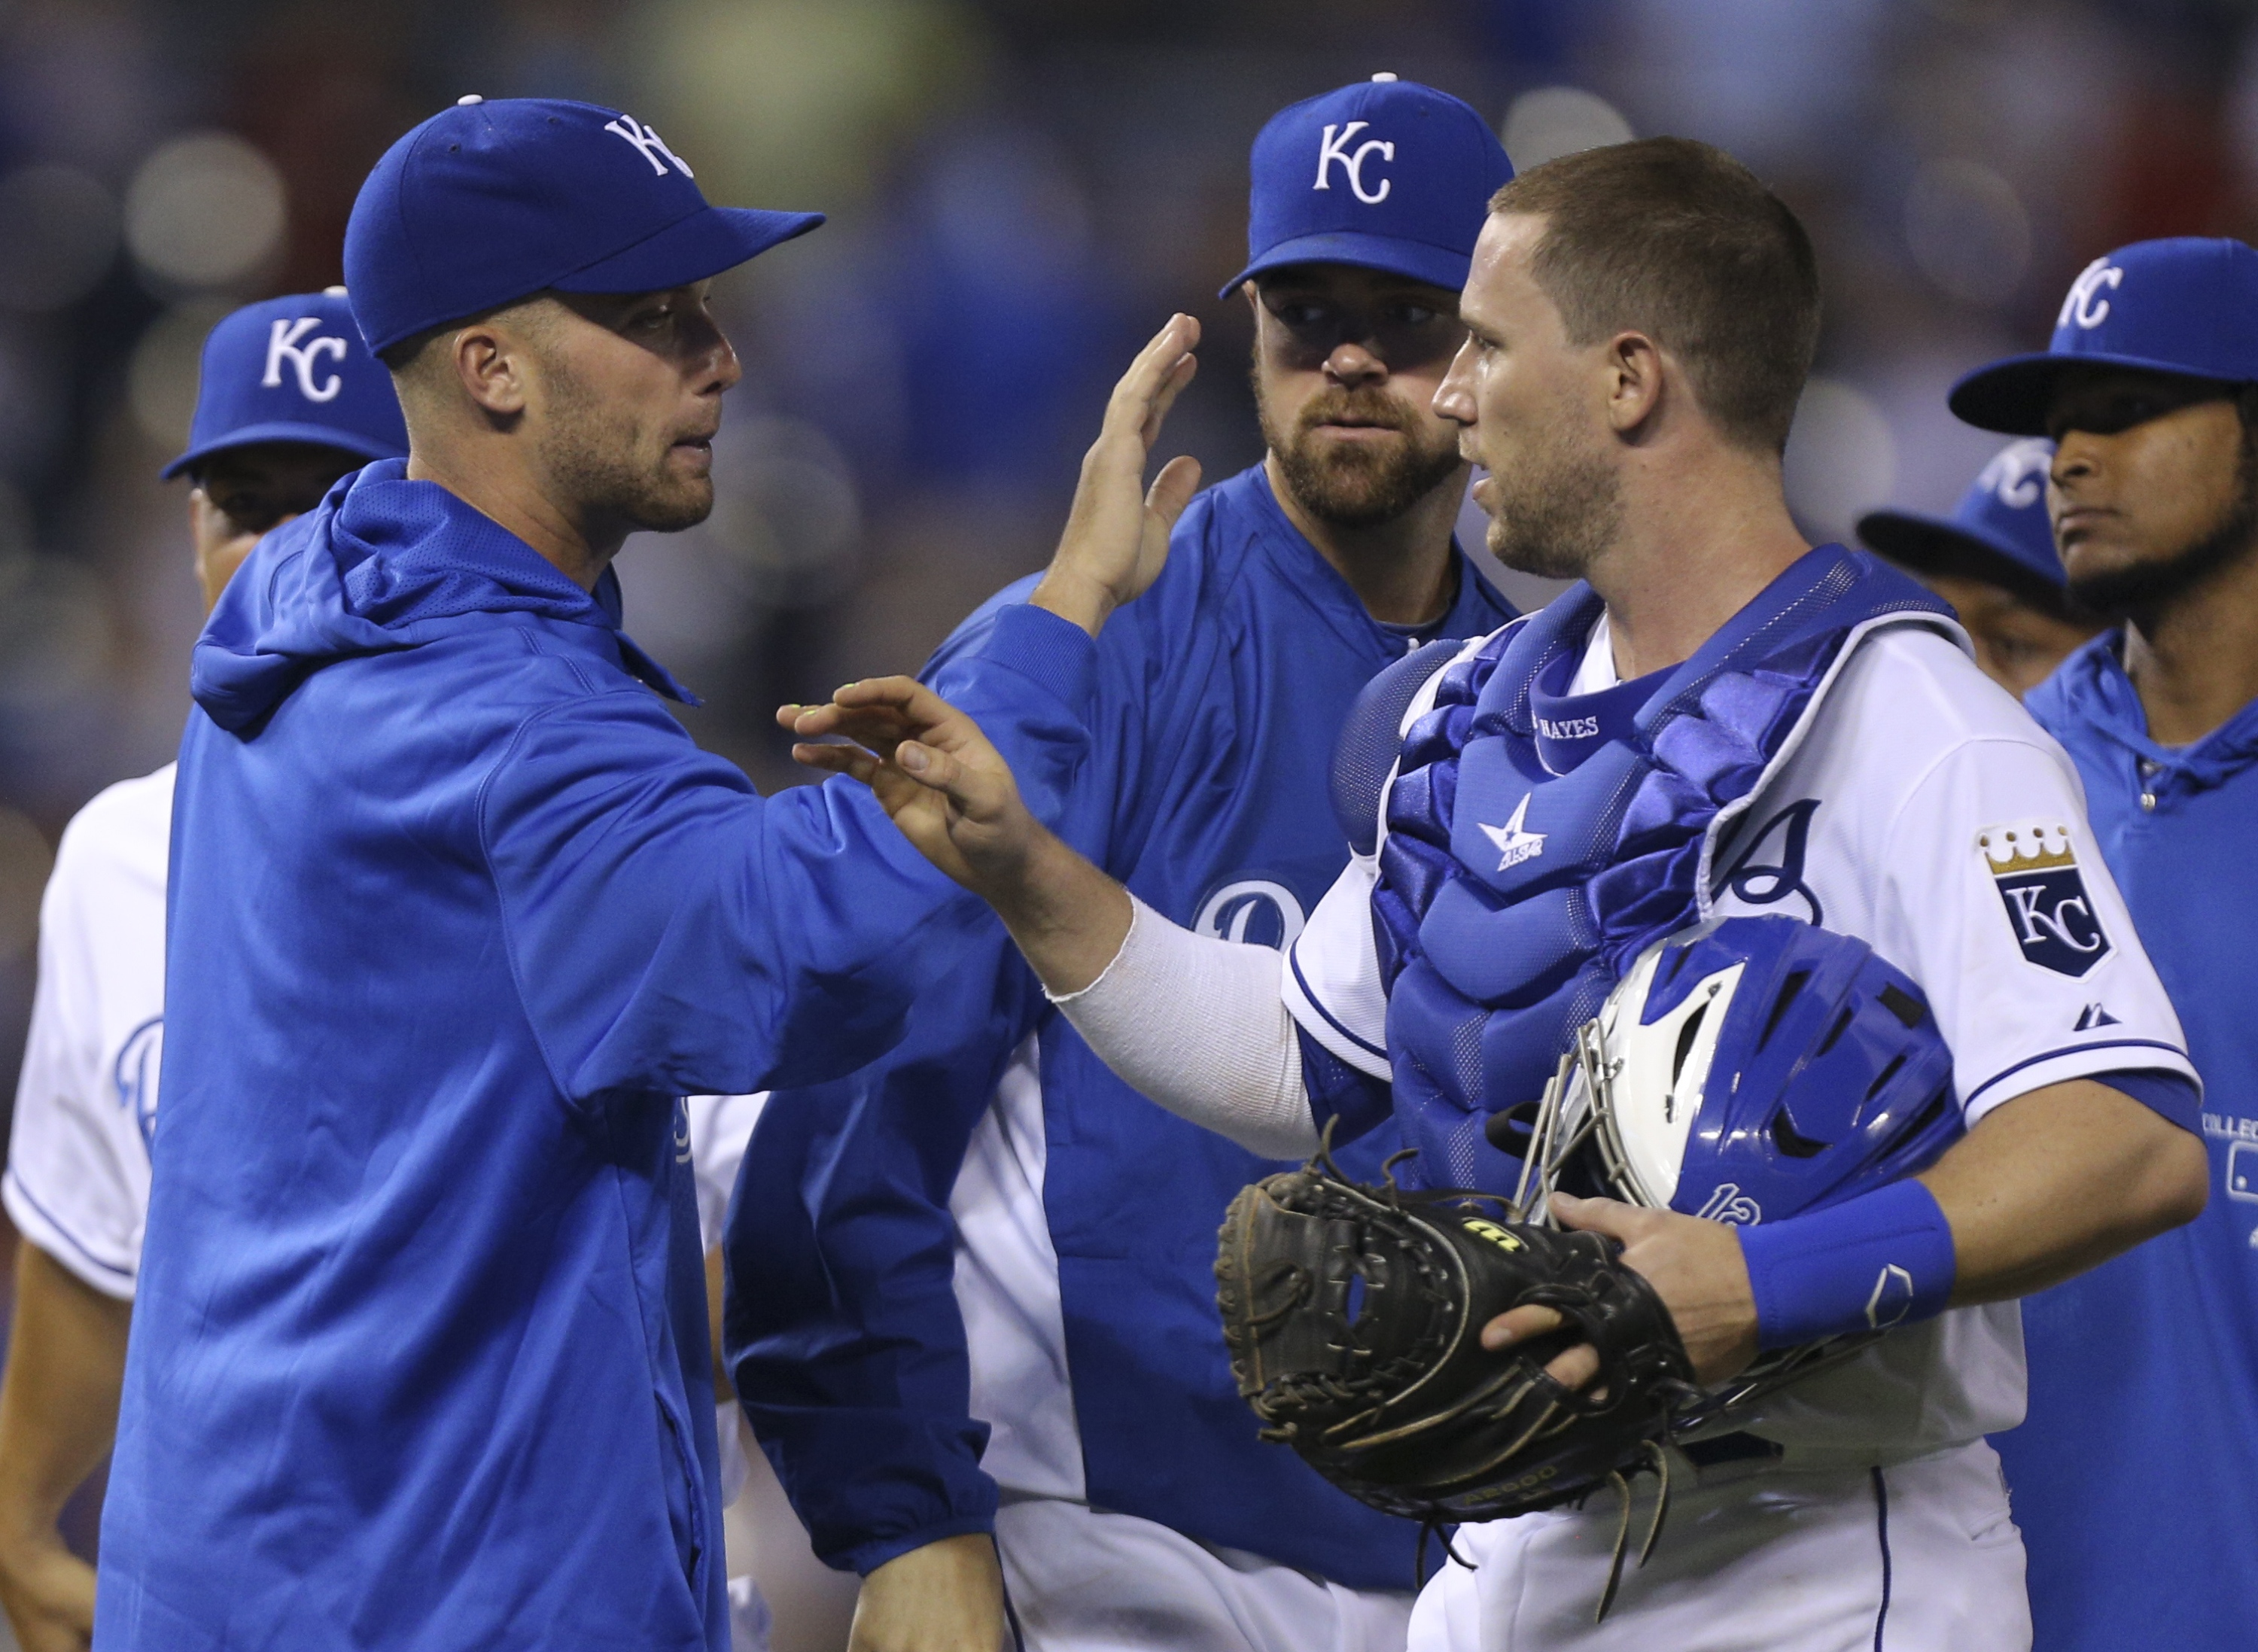 Royals catcher Brett Hayes went 2 for 4 in Wednesday's victory against the Twins. (Getty Images)